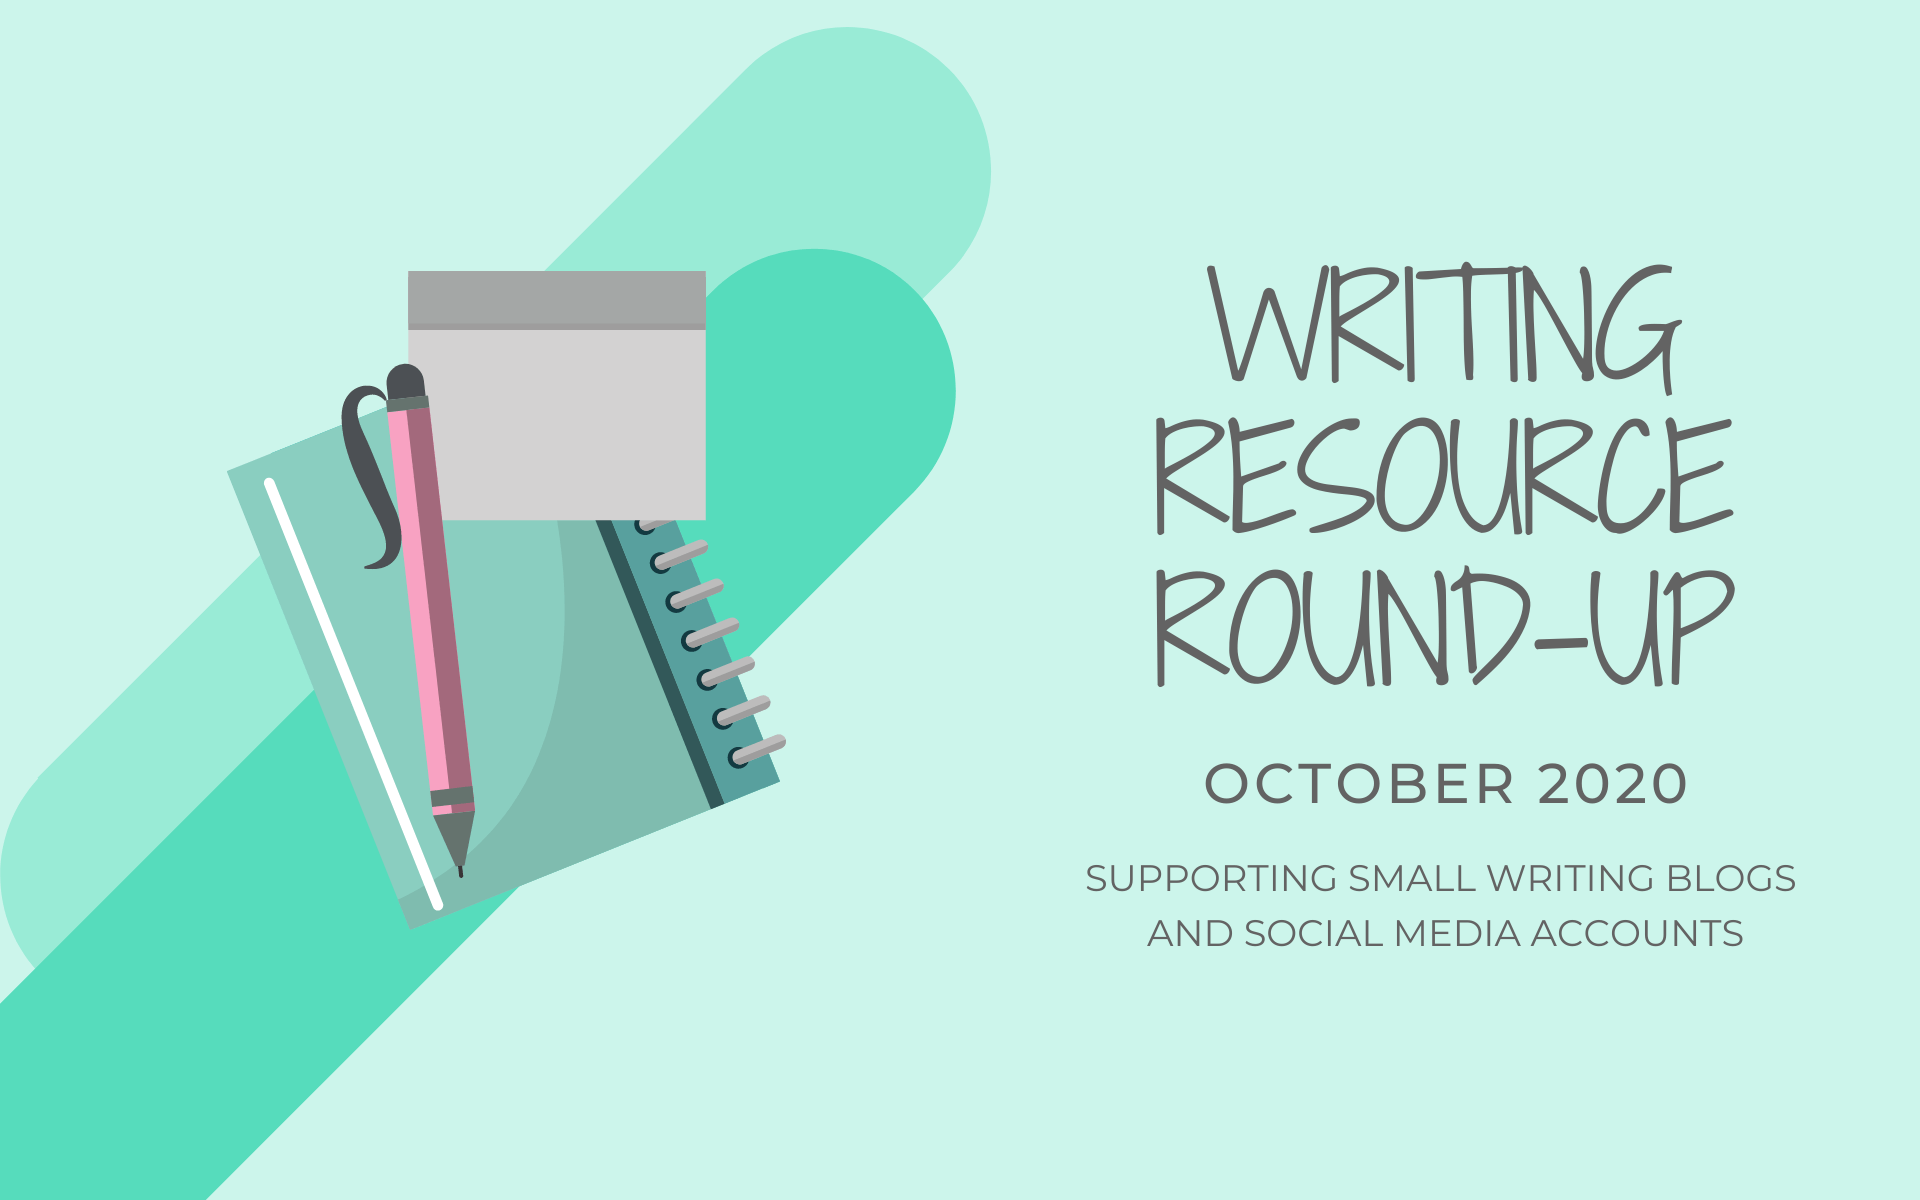 writing resource round up october 2020 featured image